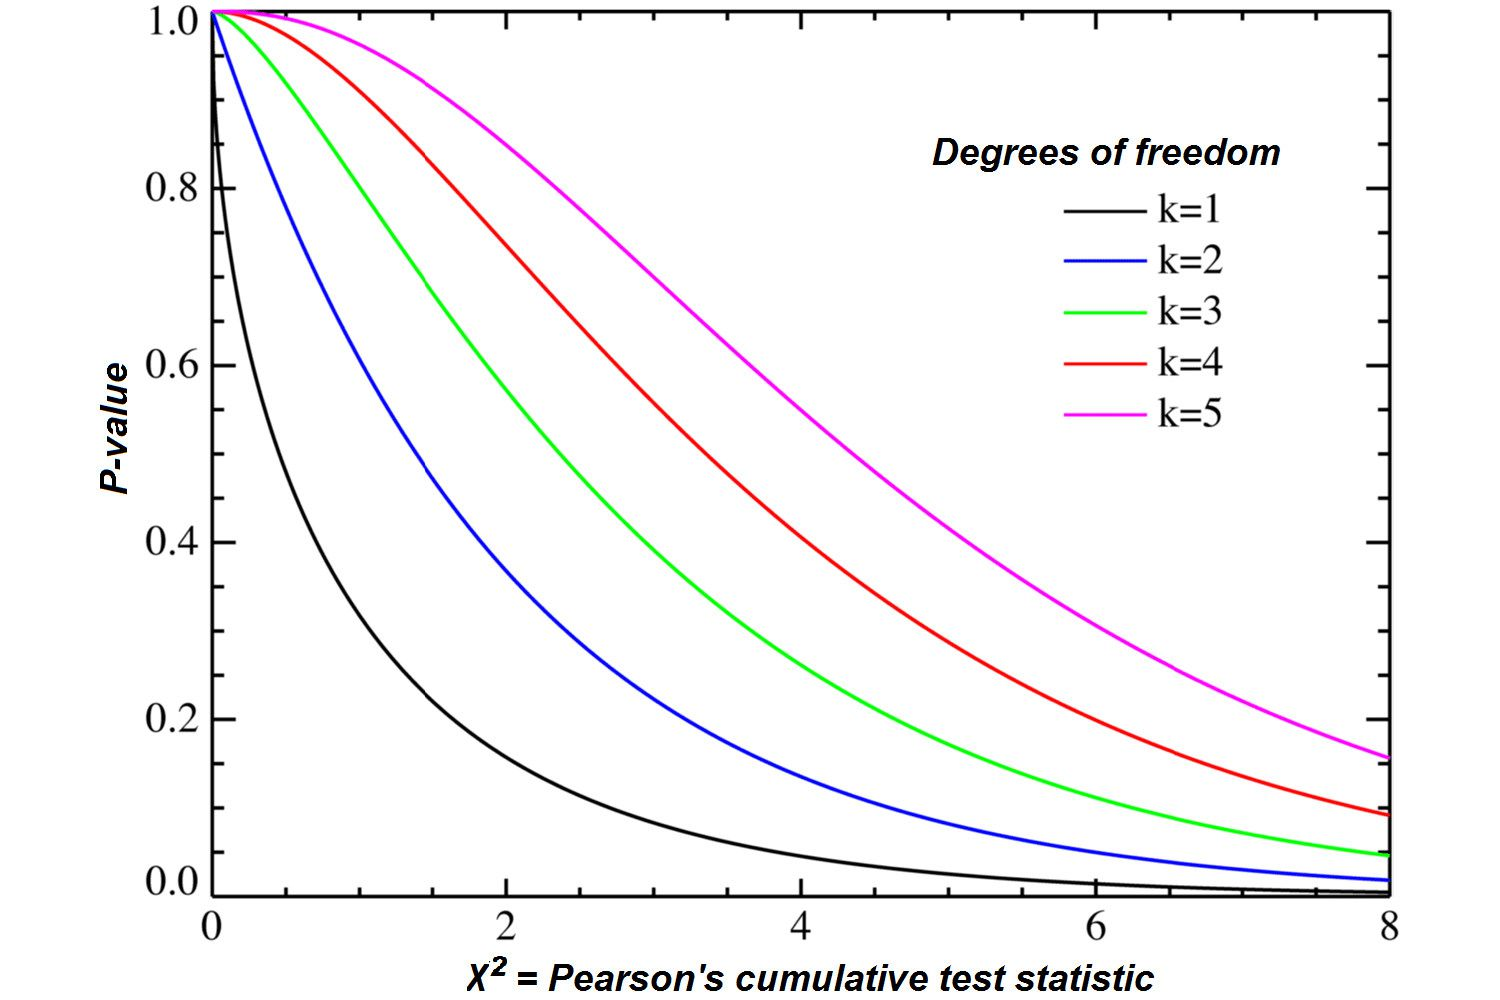 How To Find Degrees Of Freedom In Statistics